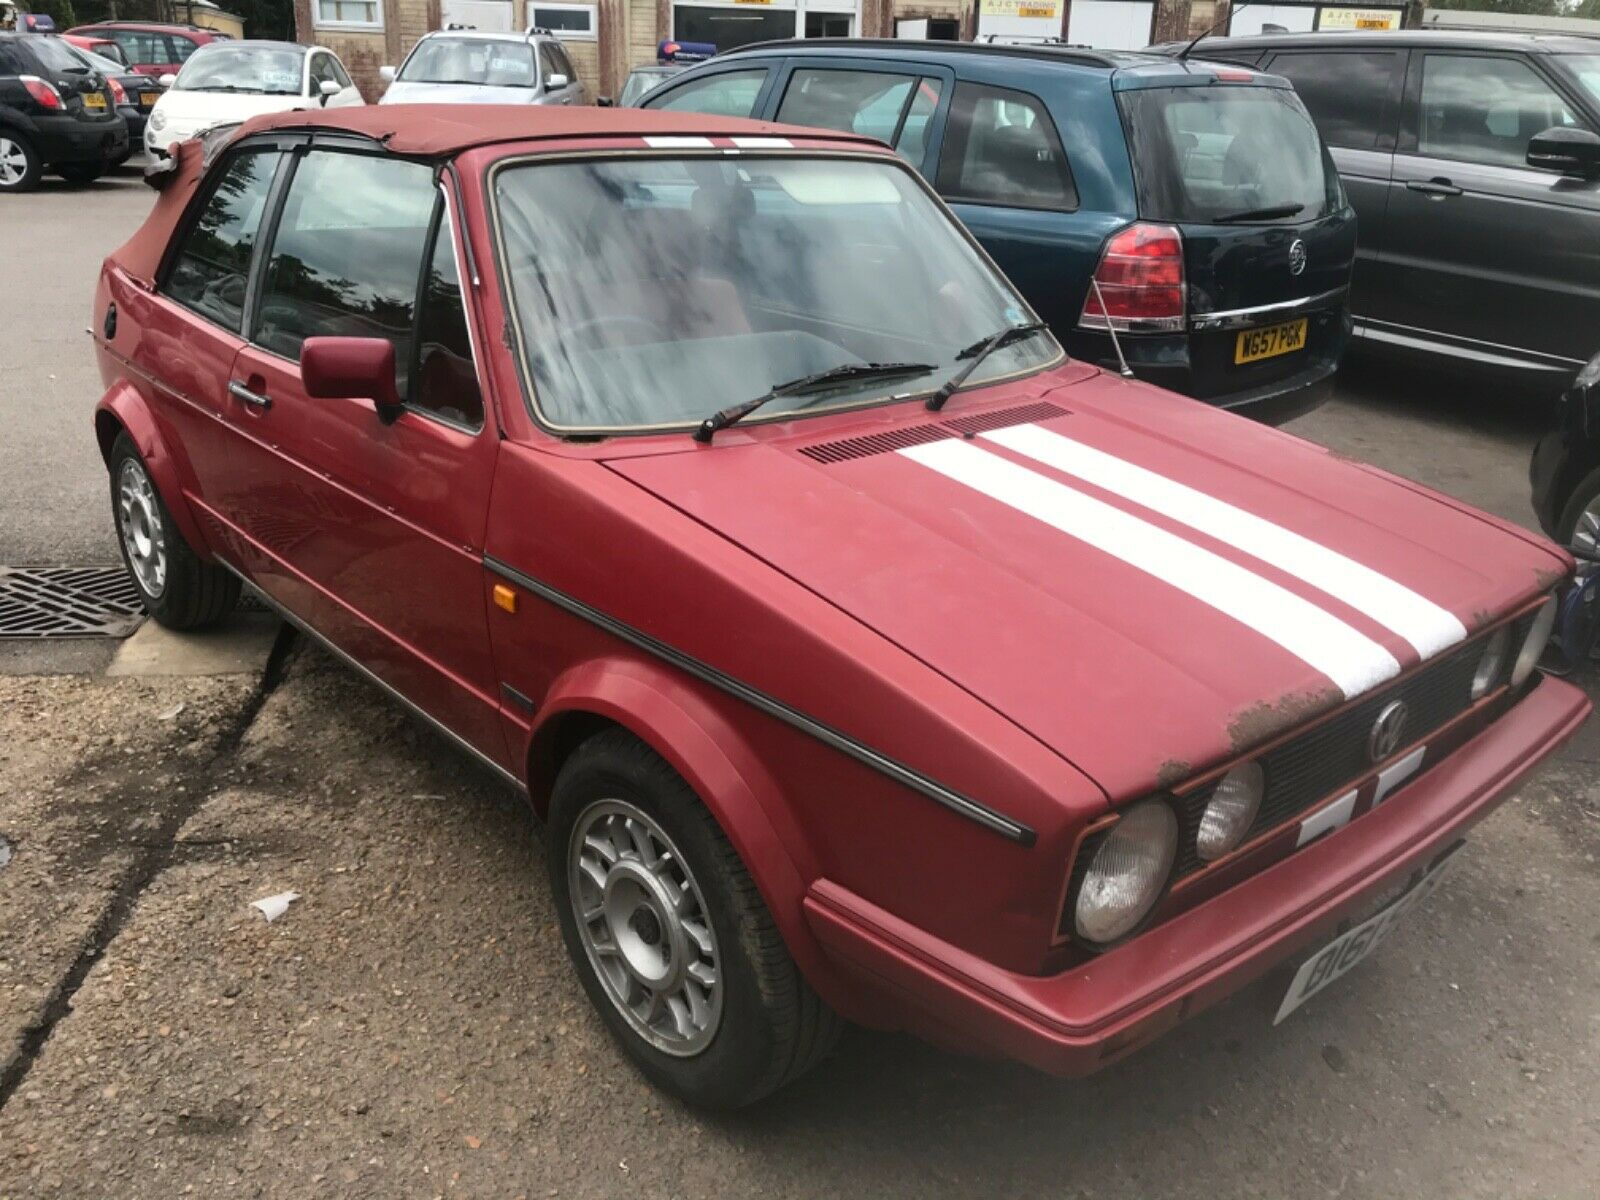 Volkswagen-Golf-mk1-great-classic-1987-its-a-project-but-starts-and-drives-well